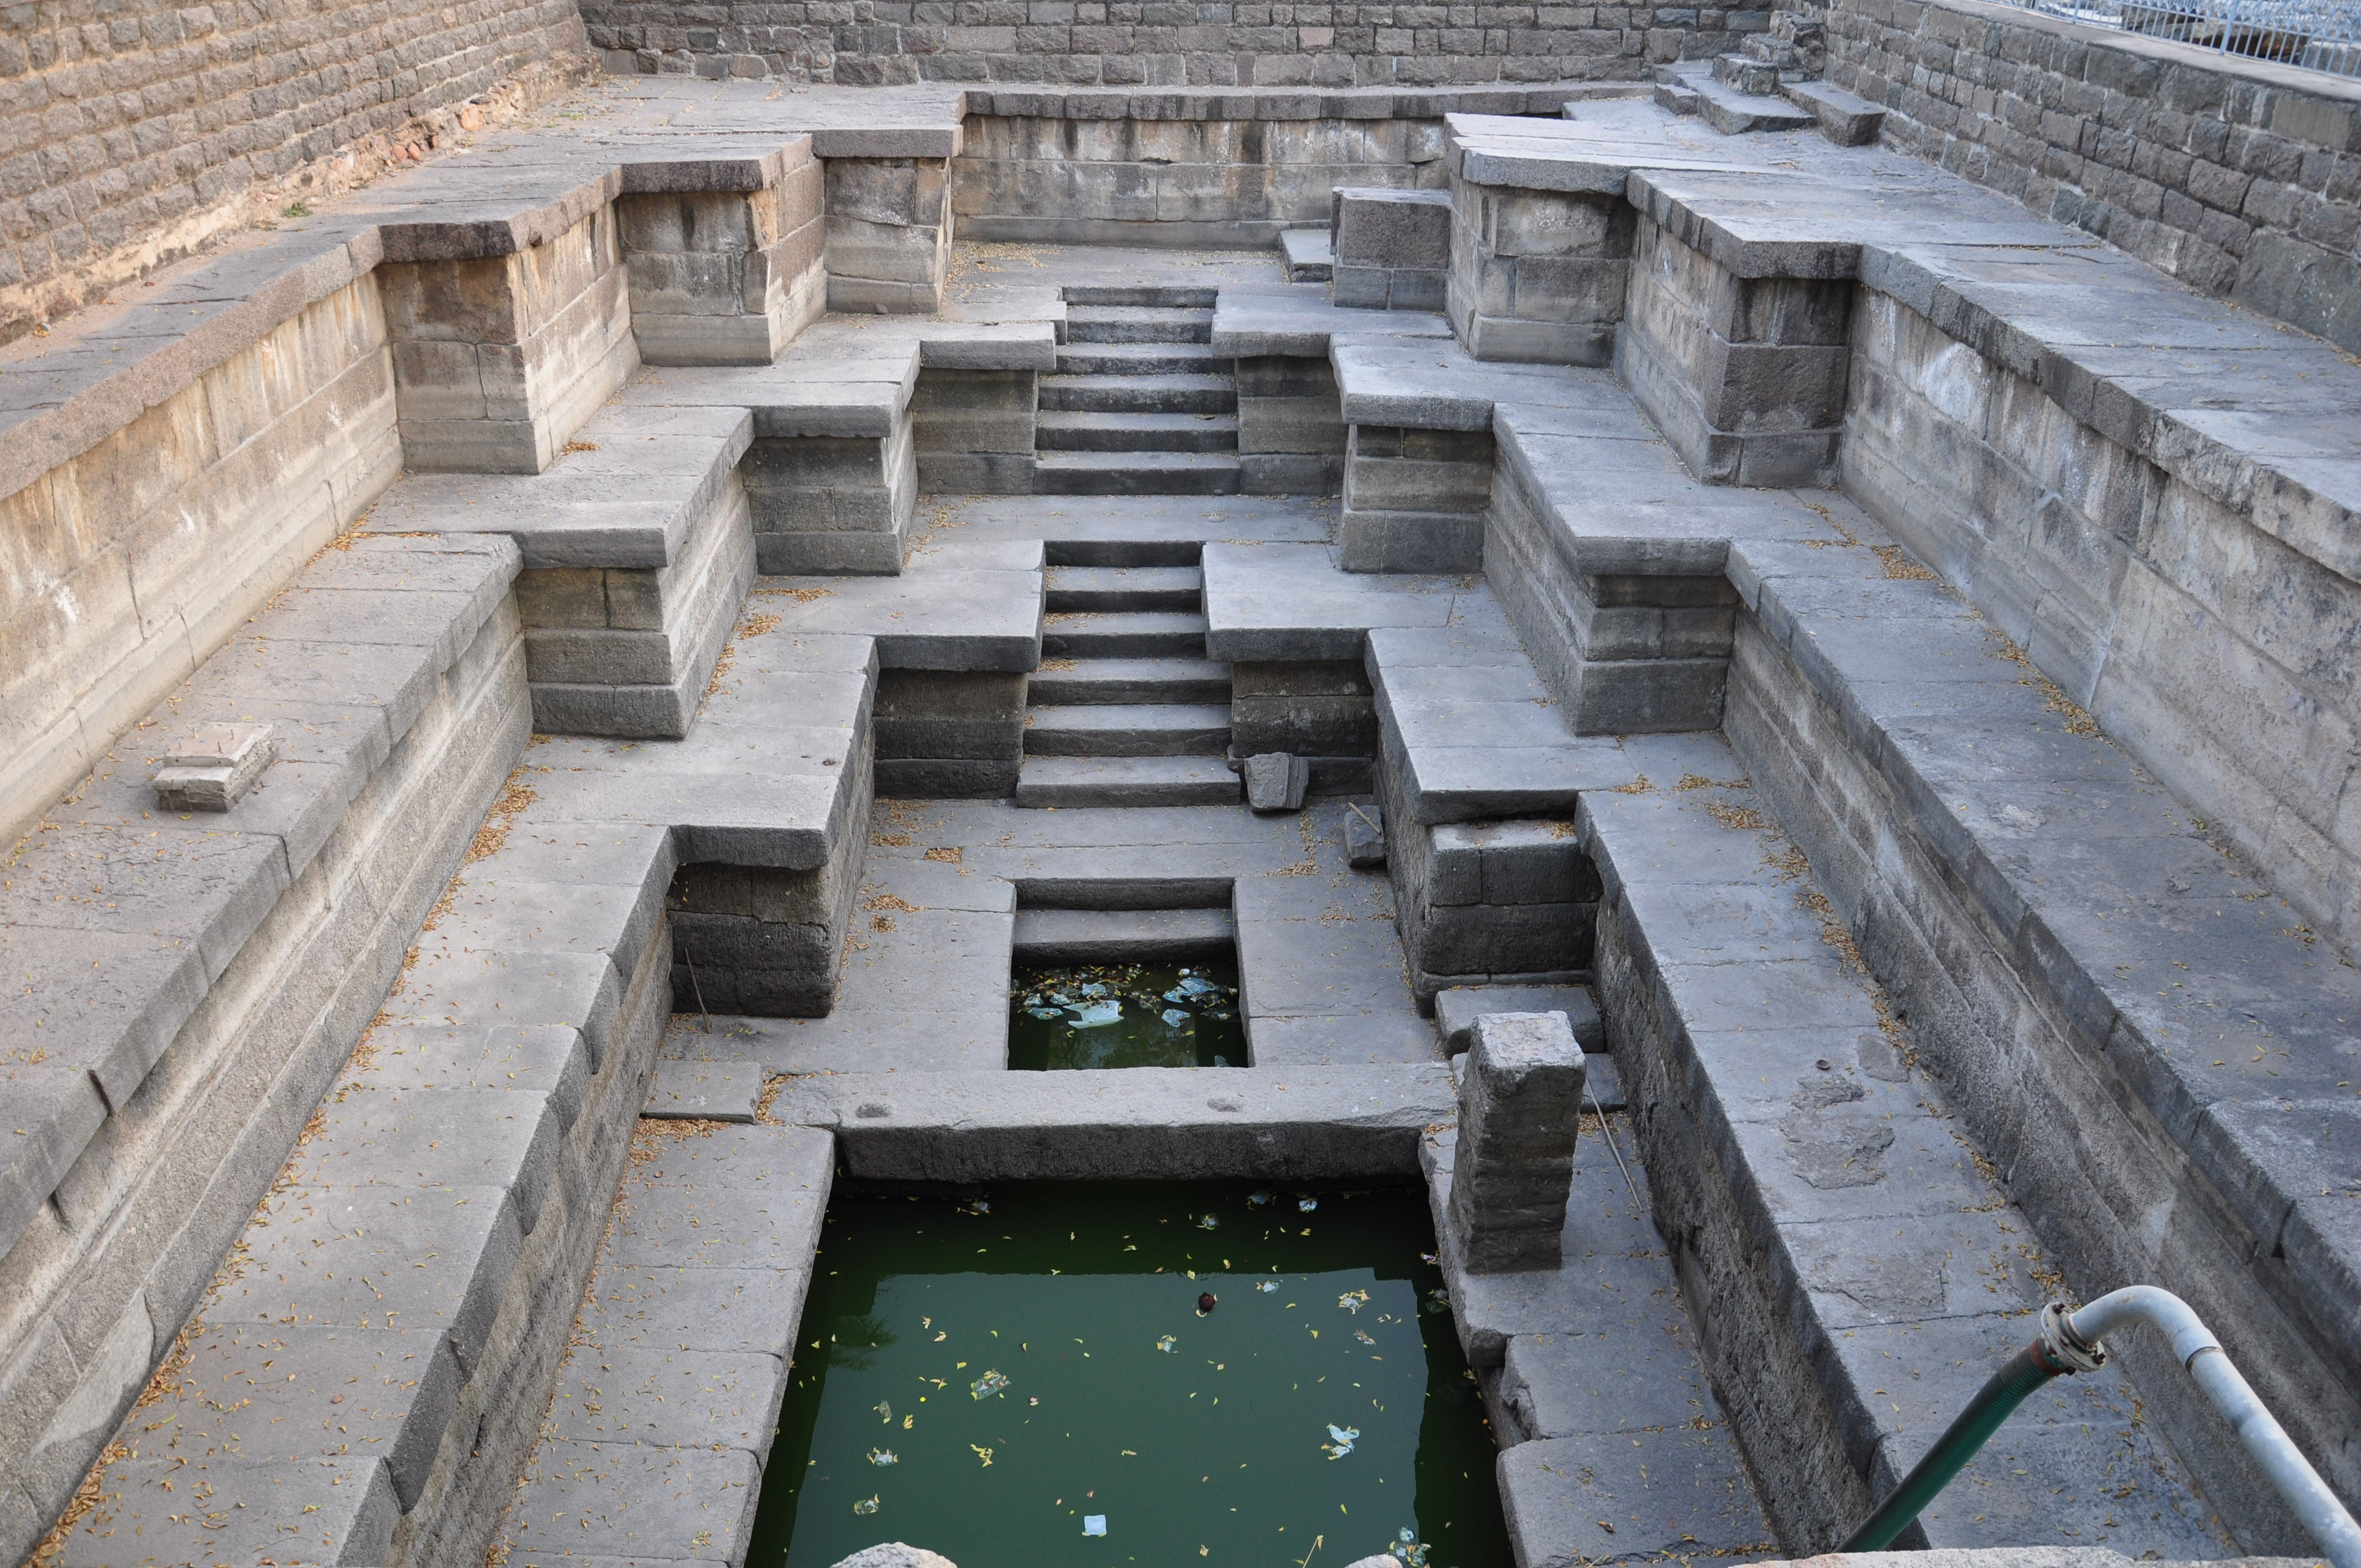 http://upload.wikimedia.org/wikipedia/commons/e/ec/Thousand_Pillar_Temple_pond.JPG